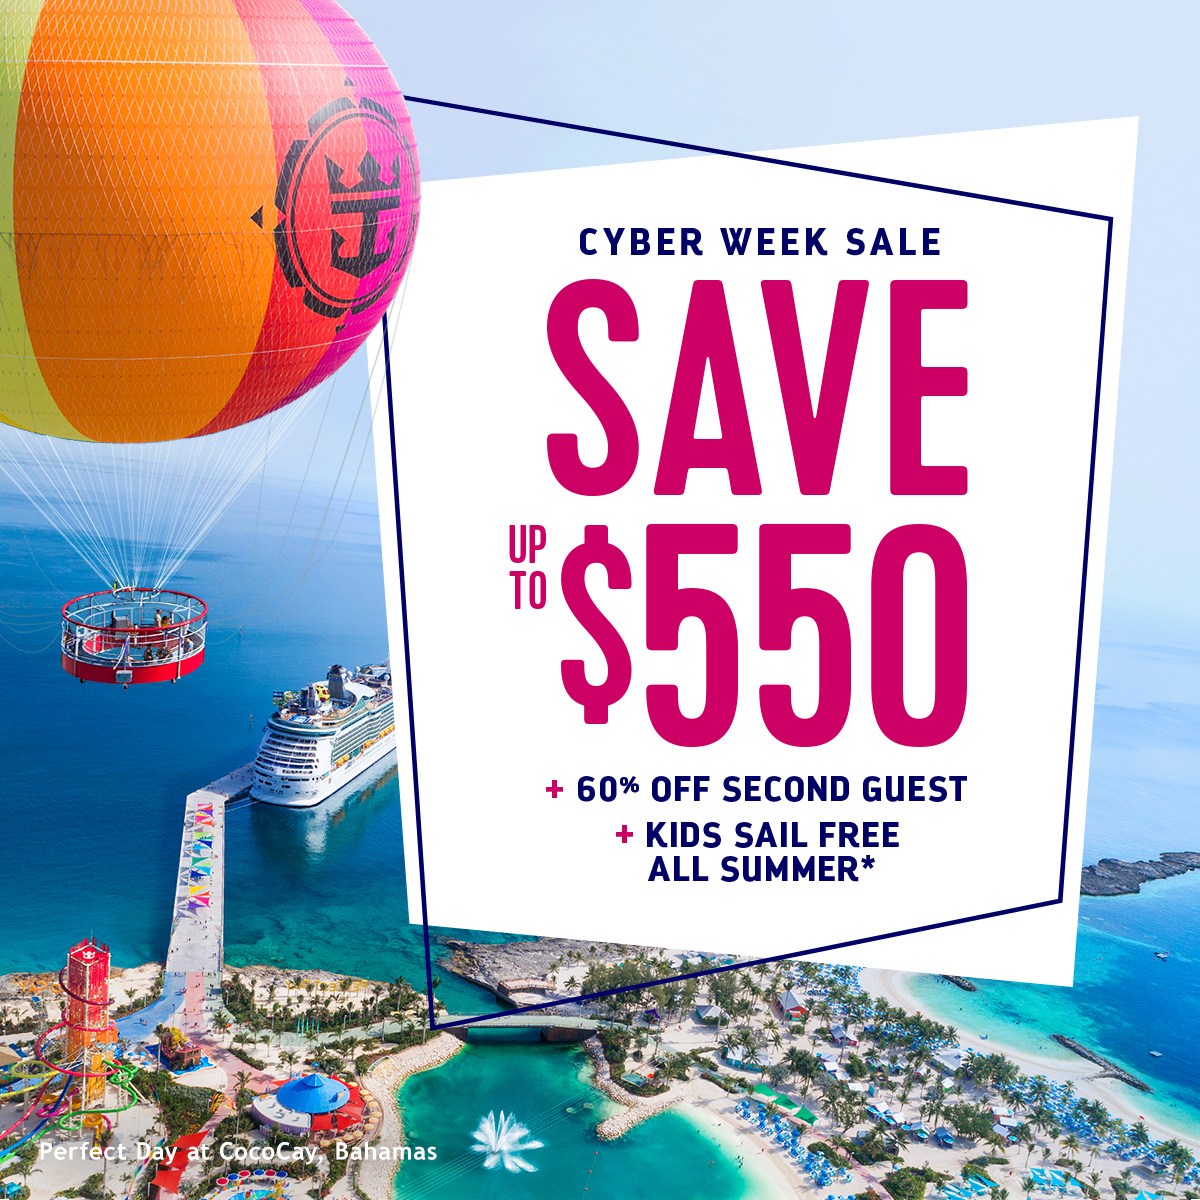 UP TO $550 OFF